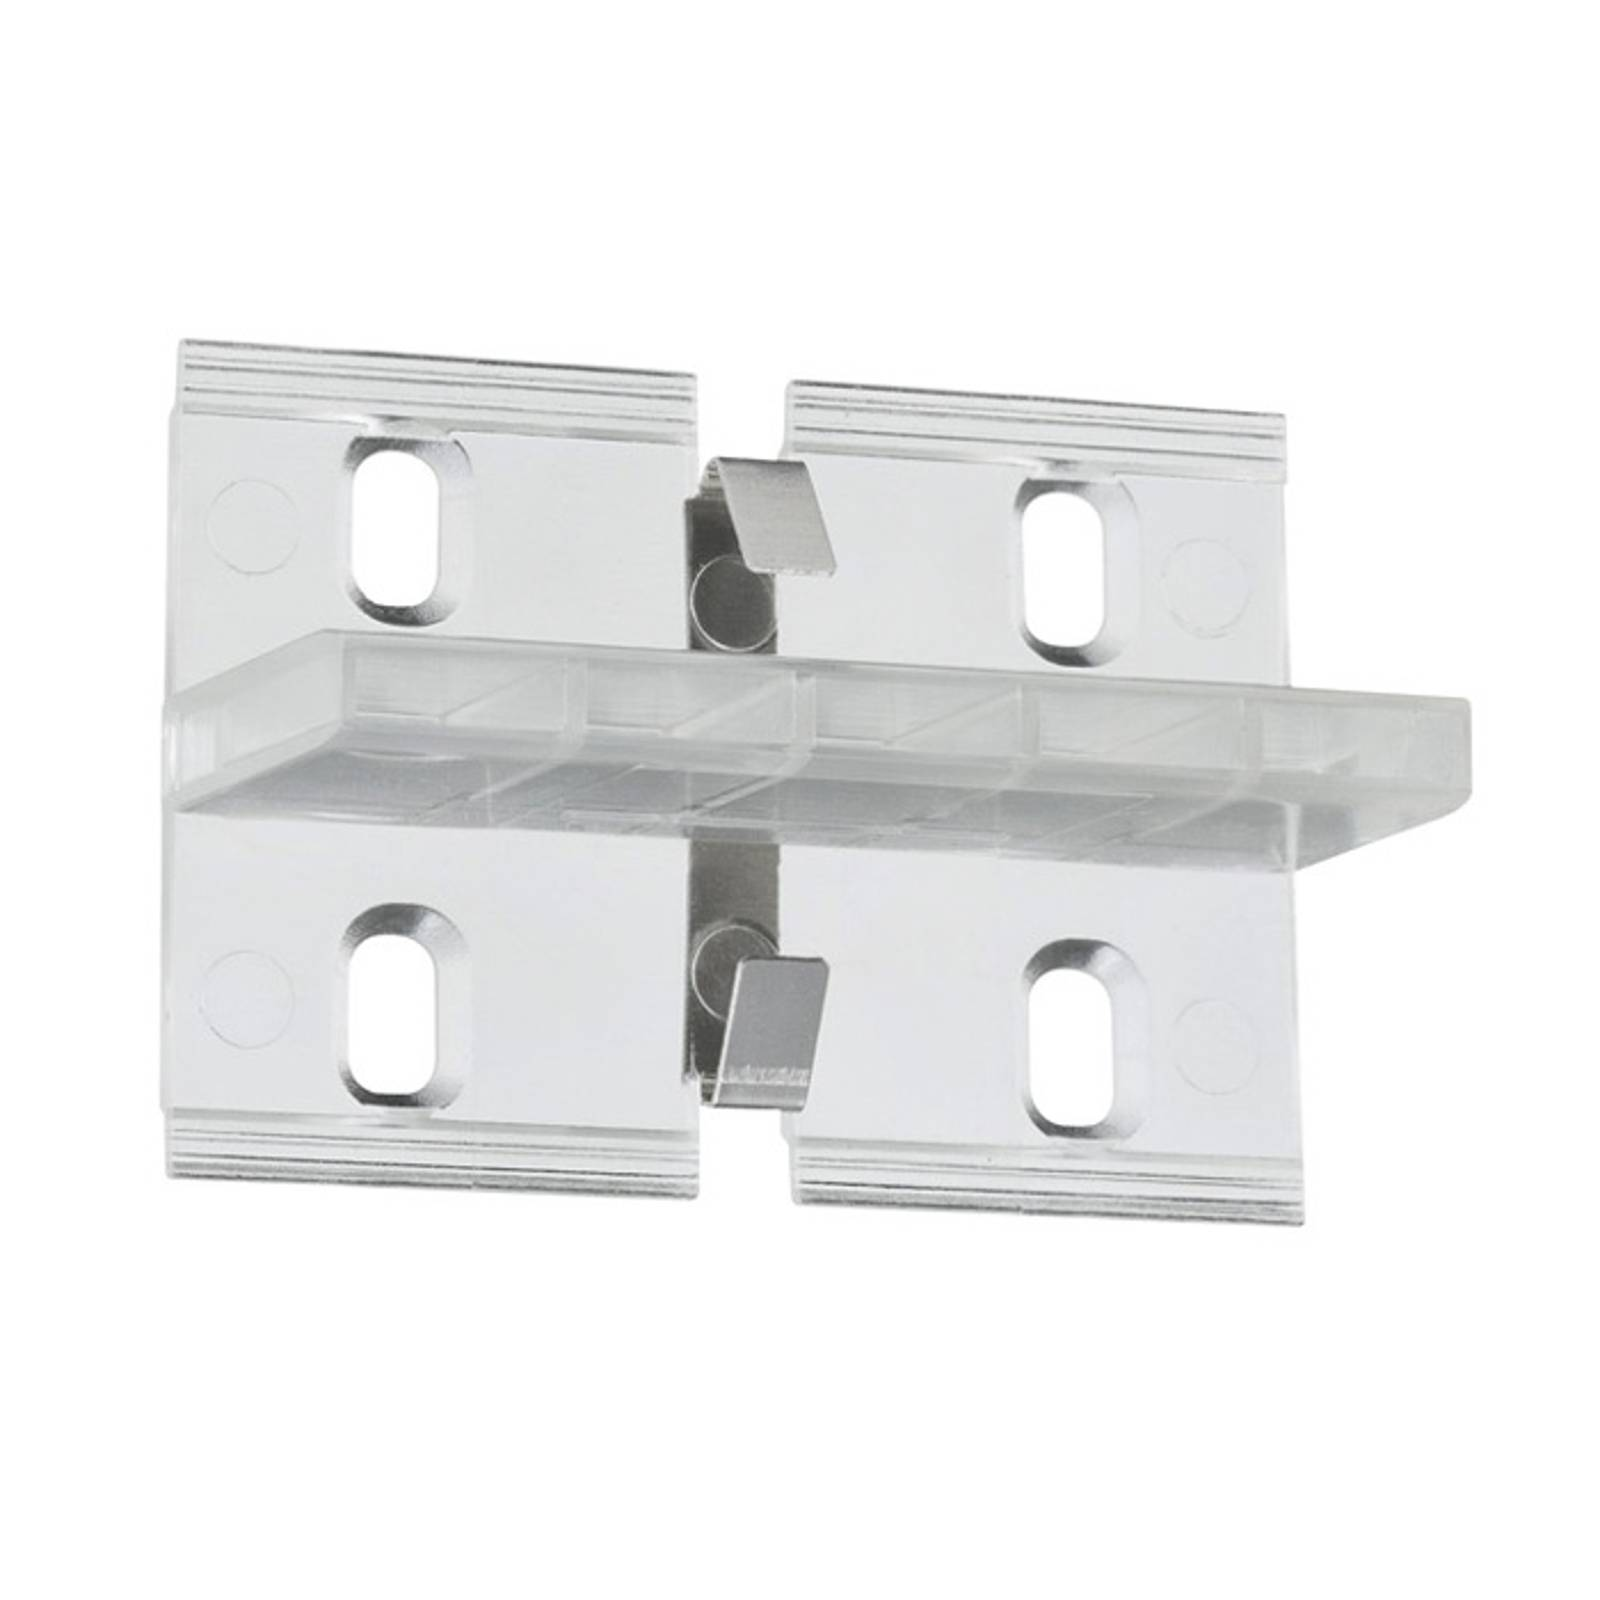 Duo Profile wall bracket for LED strip system from Paulmann